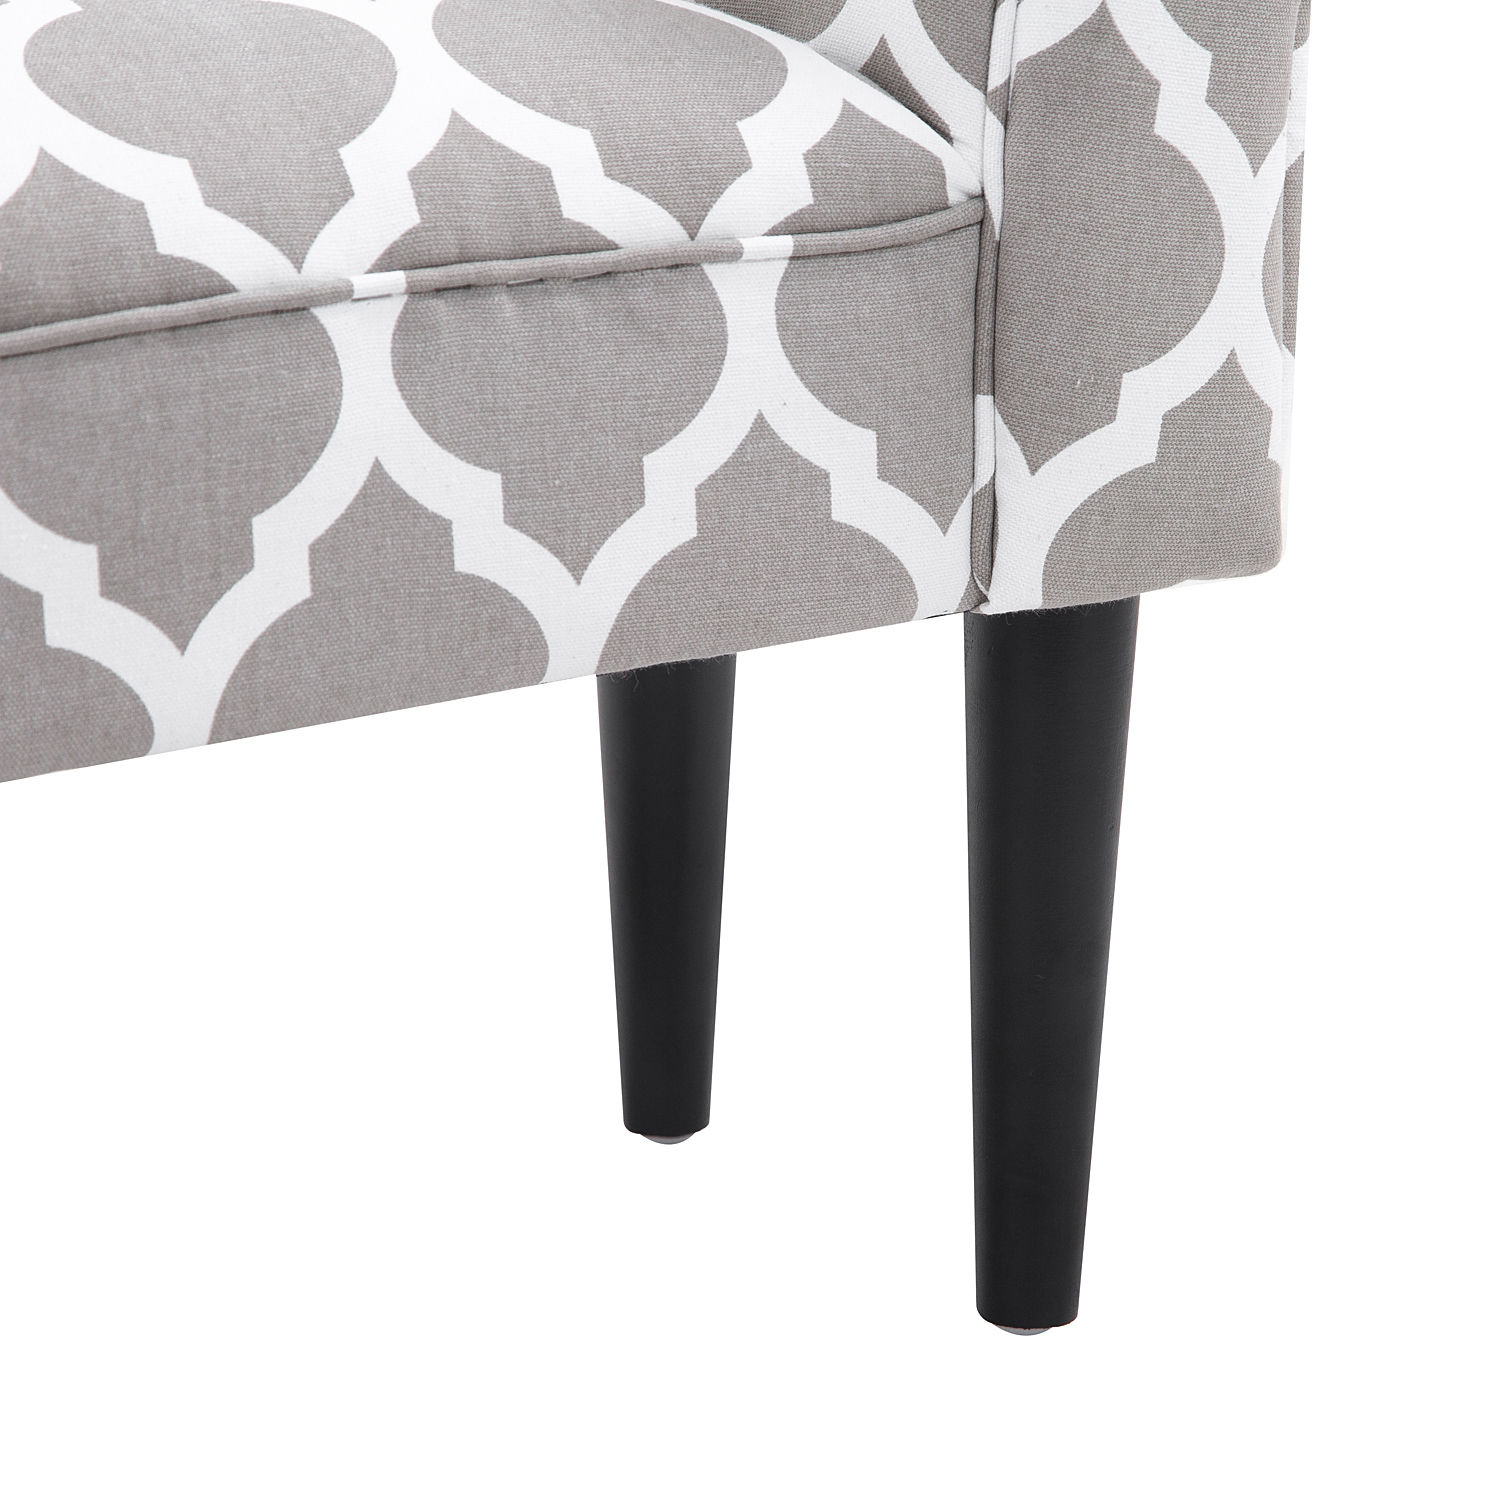 Elegant-Rolled-Arm-Bench-Bedside-End-of-Bed-Footstool-w-Arms-2-SIZE thumbnail 8